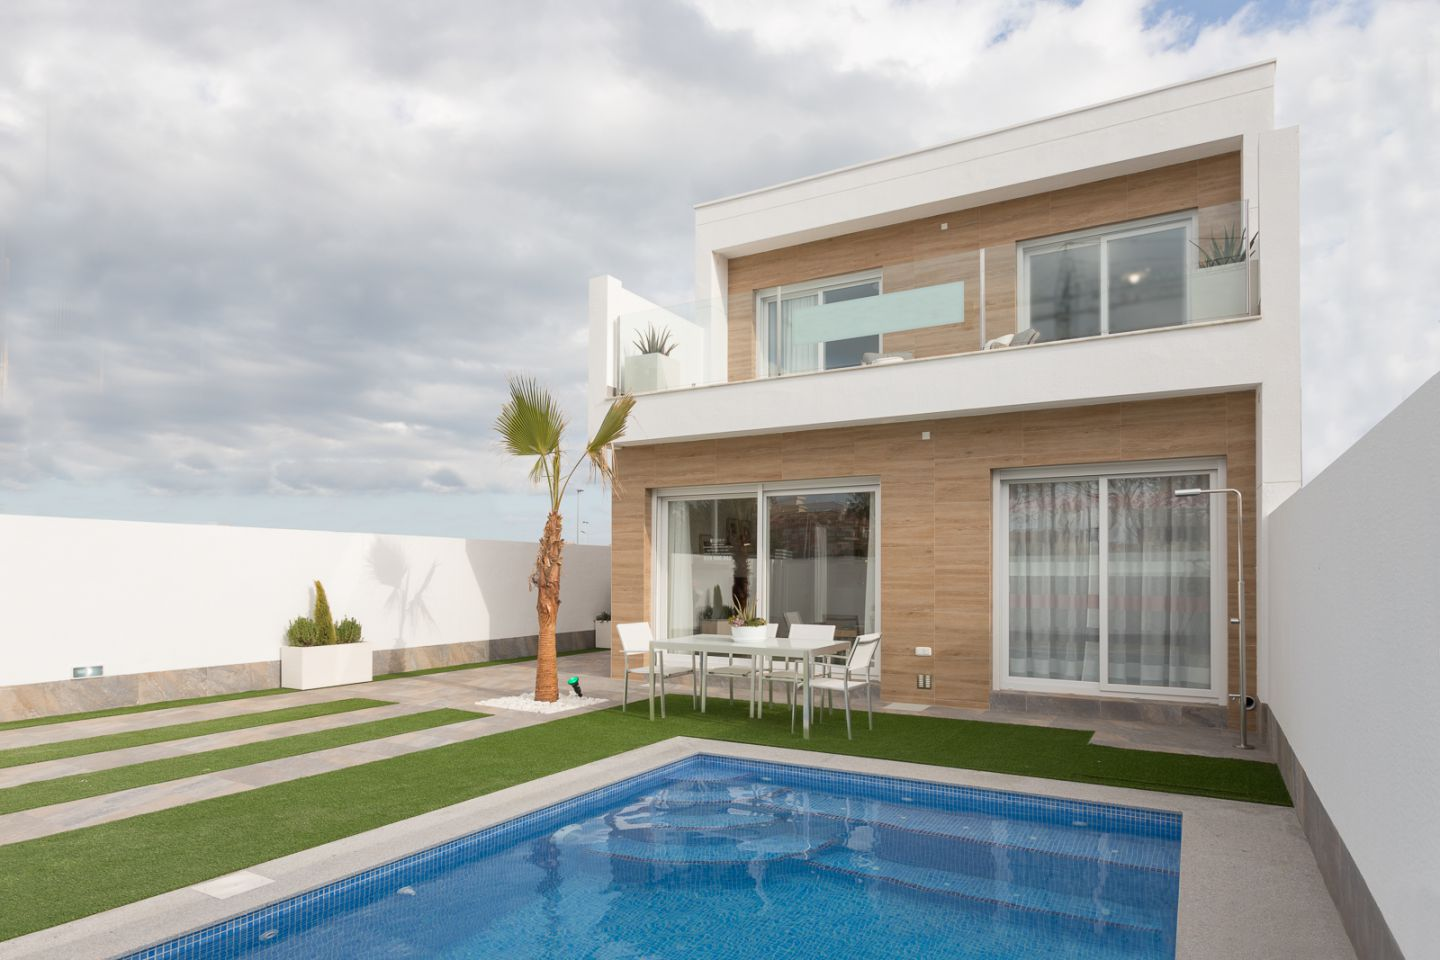 Villas With 3 Bedrooms And Swimming Pool In Pilar De La Horadada